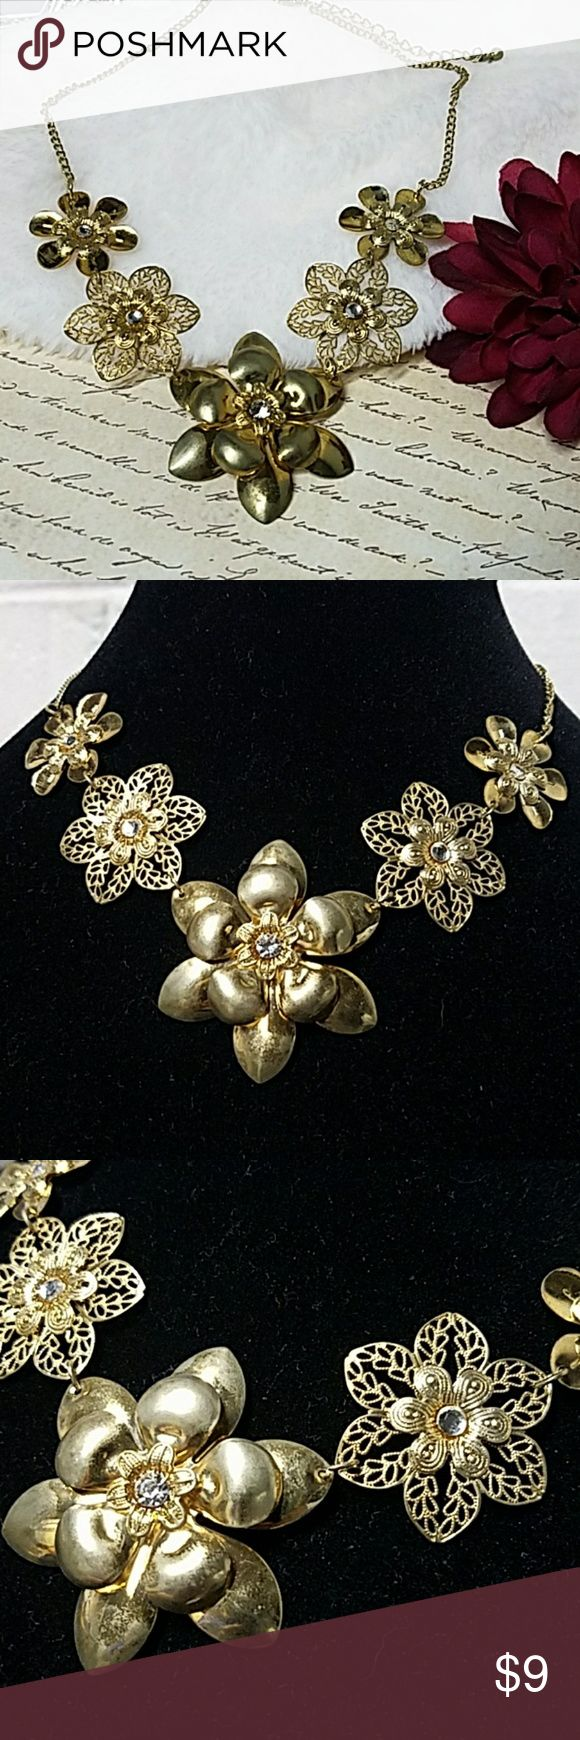 """Gold Mixed Flower Choker/Collar Necklace 16"""" Long w/3"""" extender chain. Mix of gold (solid & filigree) flowers w/Crystal accents. Item#N977 *ALL JEWELRY IS NWT/NWOT/UNUSED VINTAGE* 25% OFF BUNDLES OF 3 OR MORE ITEMS! **ALL REASONABLE OFFERS ACCEPTED** BUY WITH CONFIDENCE~TOP 10% SELLER, FAST SHIPPING,5 STAR RATING, FREE GIFT w/MOST ORDERS! Jesi's Fashionz  Jewelry Necklaces"""